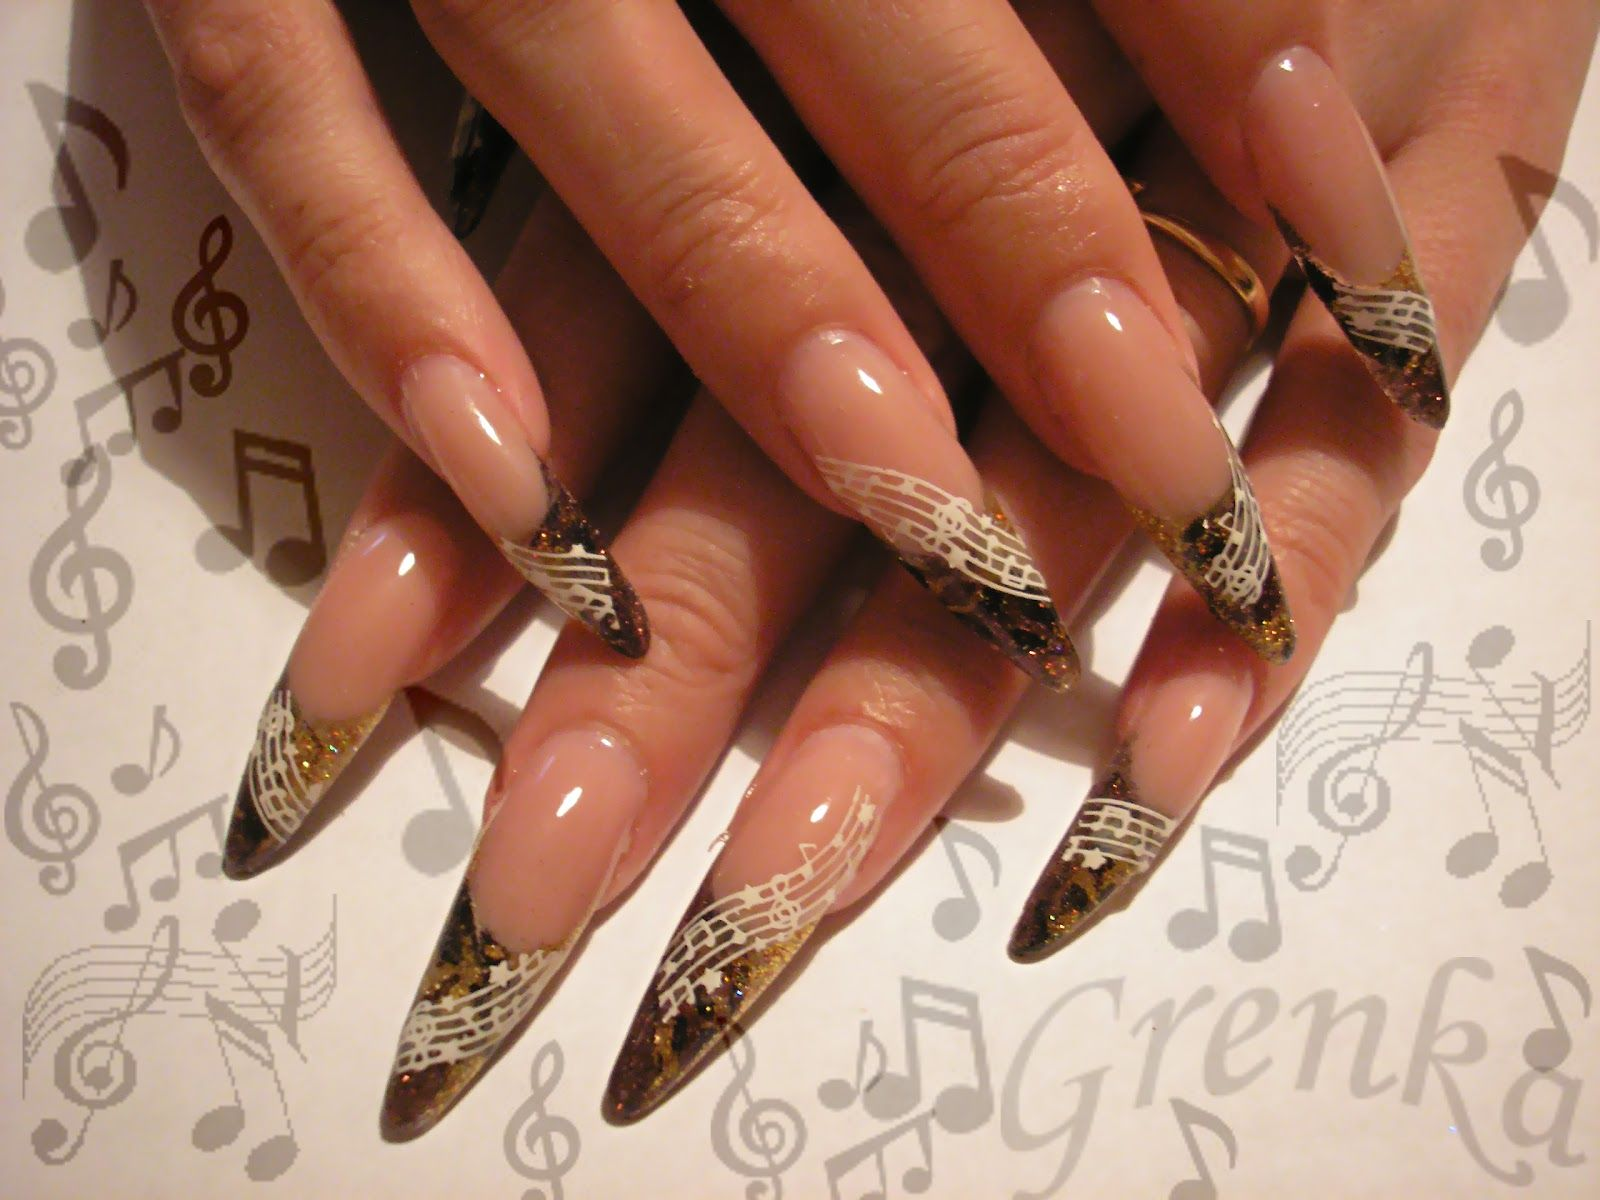 1000 images about nail design on pinterest acrylics nail designs tumblr and nail design - Nail Design Ideas 2012